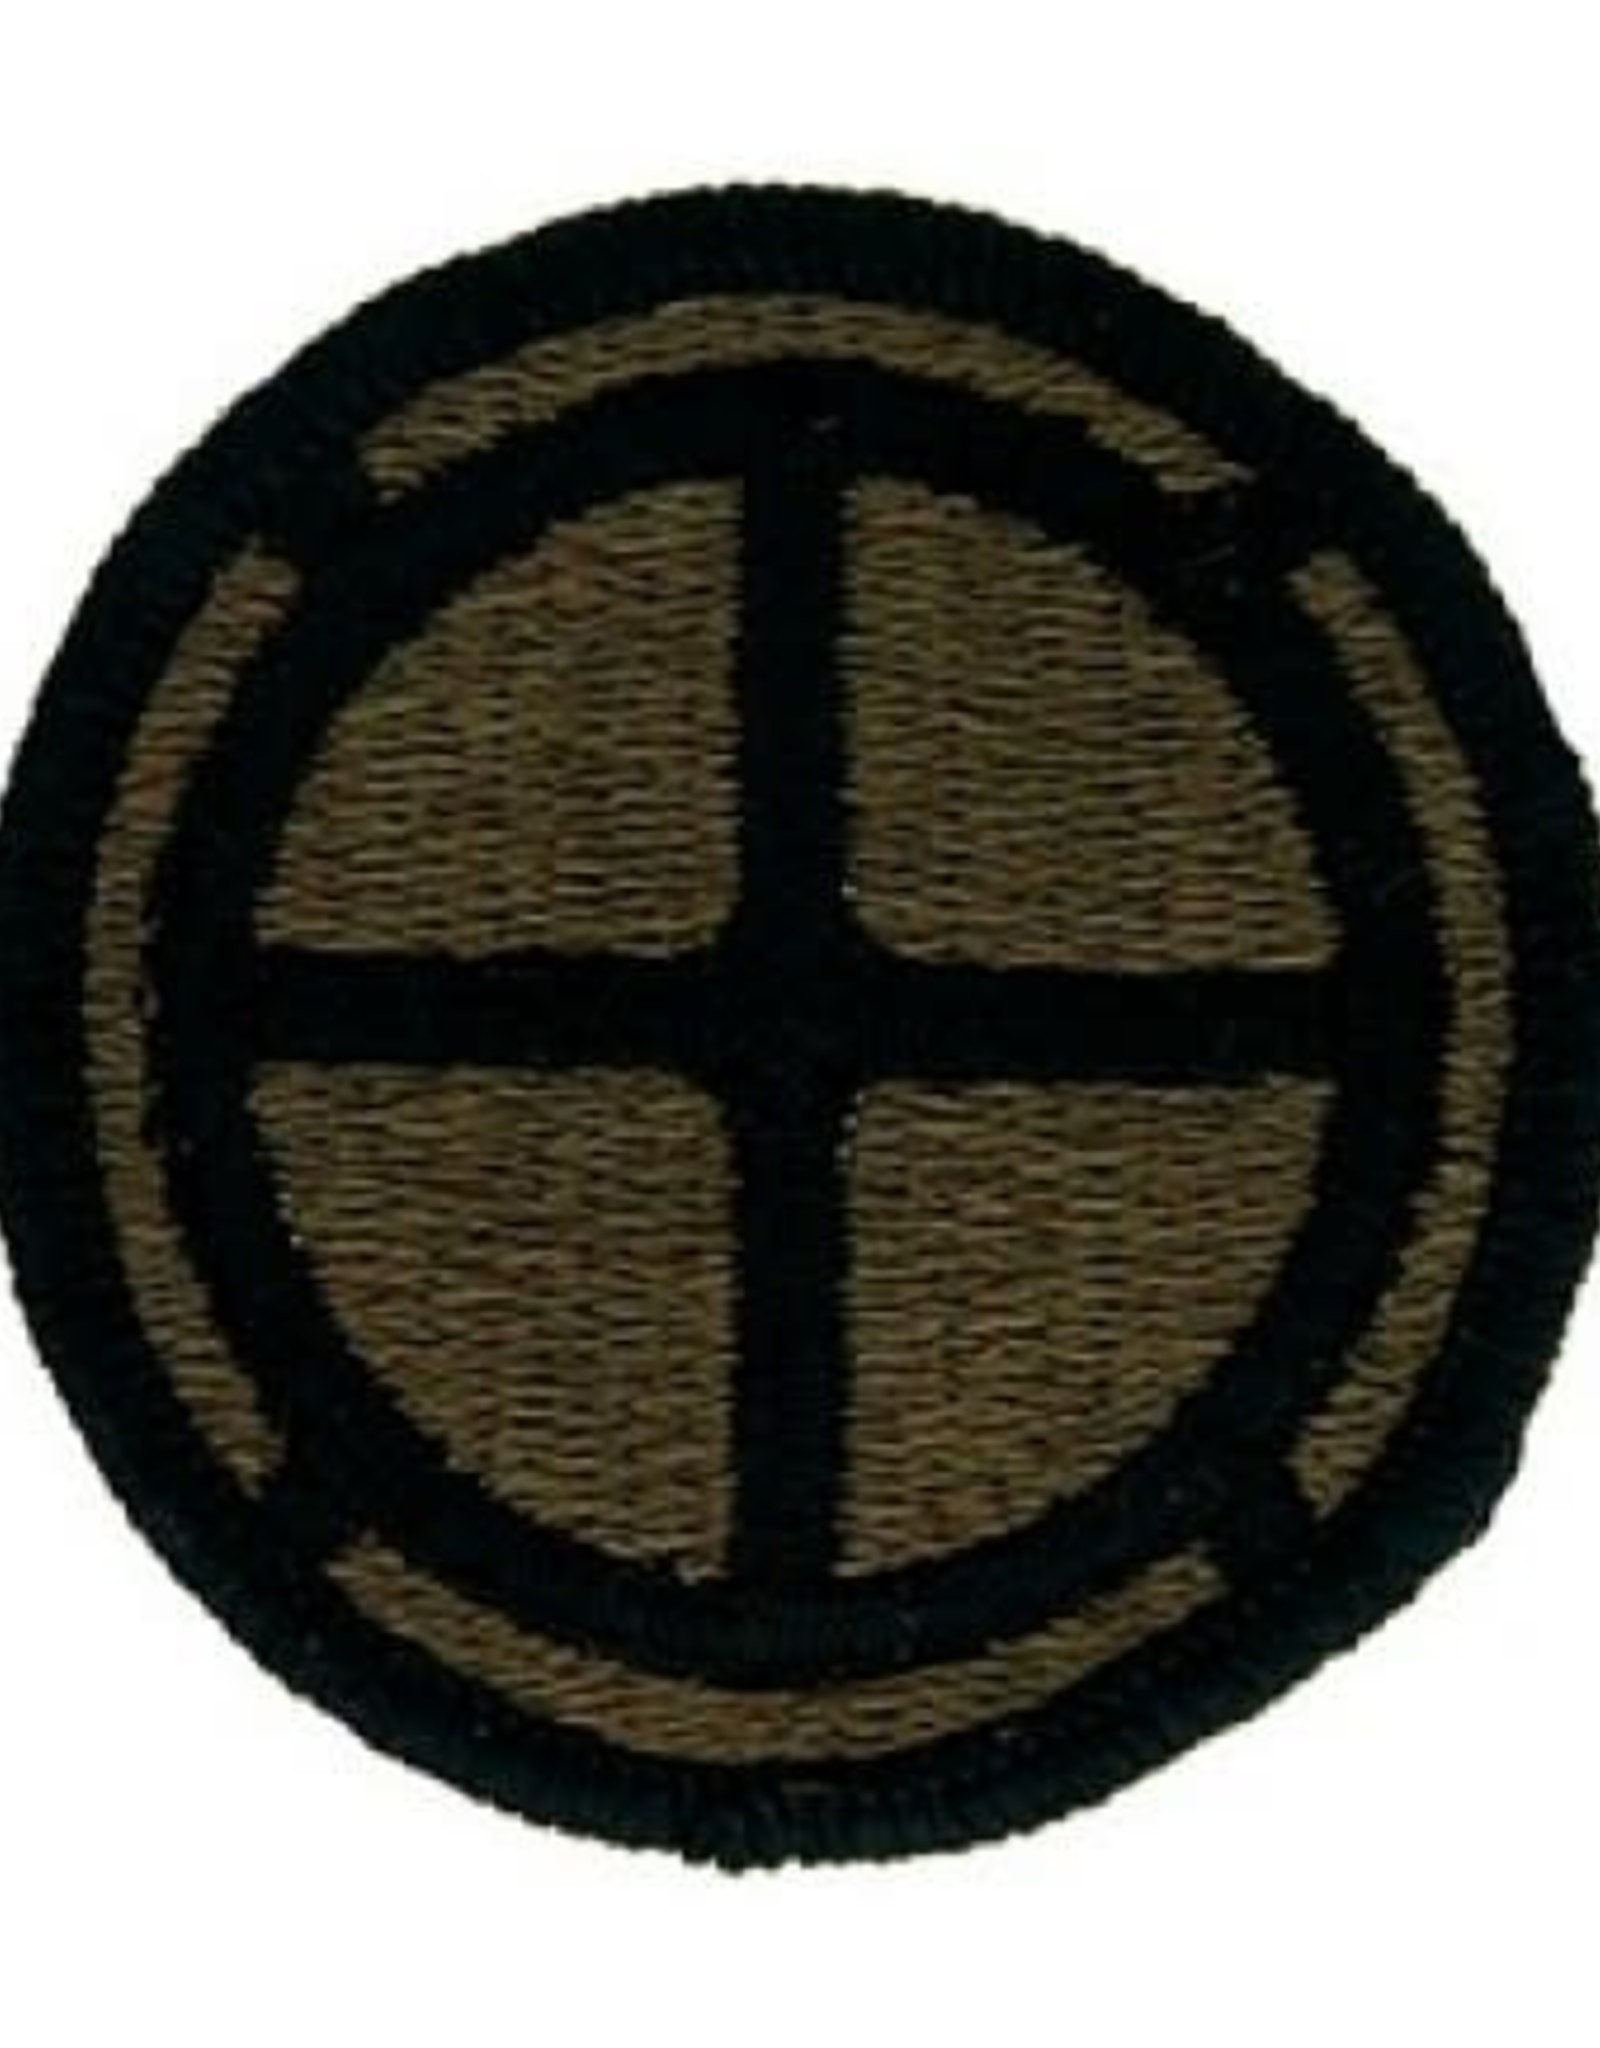 "MidMil Embroidered Subdued Army 35th Infantry Division Emblem Patch 2.2"" Olive Drab"